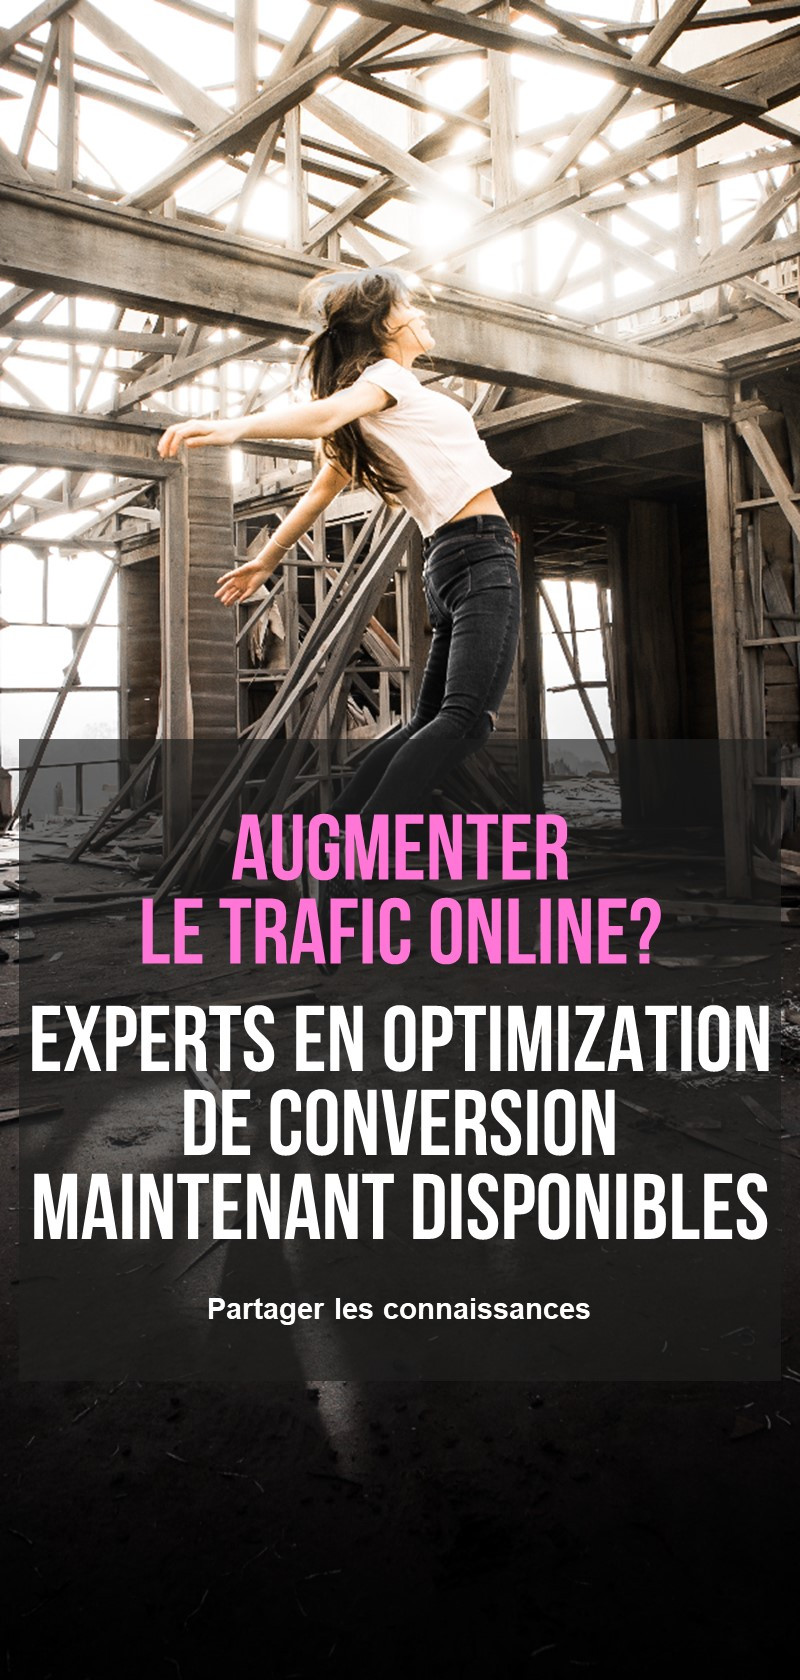 Experts en optimisation de conversion